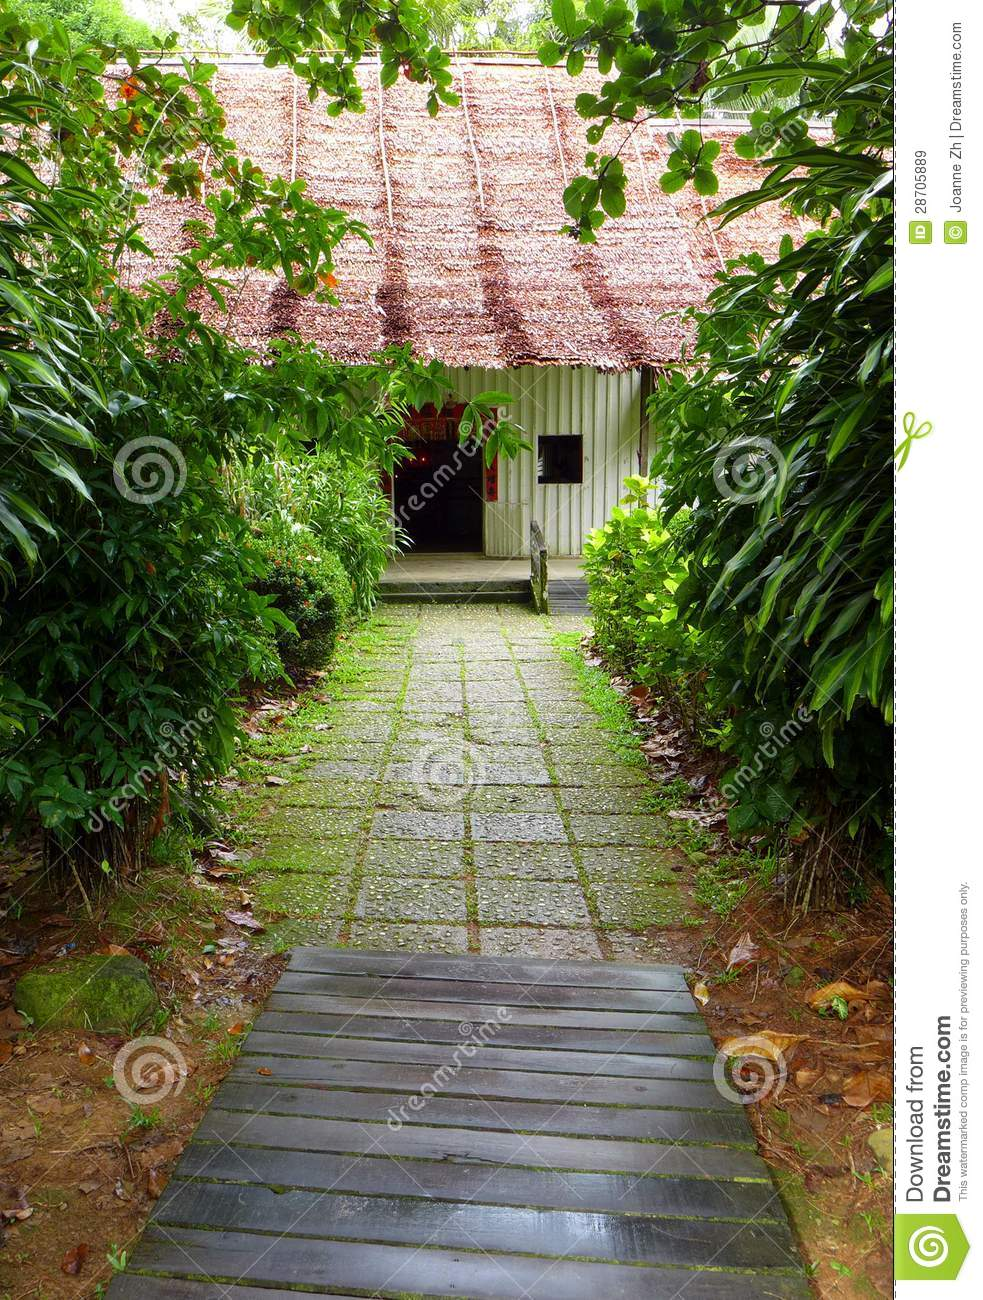 Chinese Farmhouse Architecture In Tropics Royalty Free